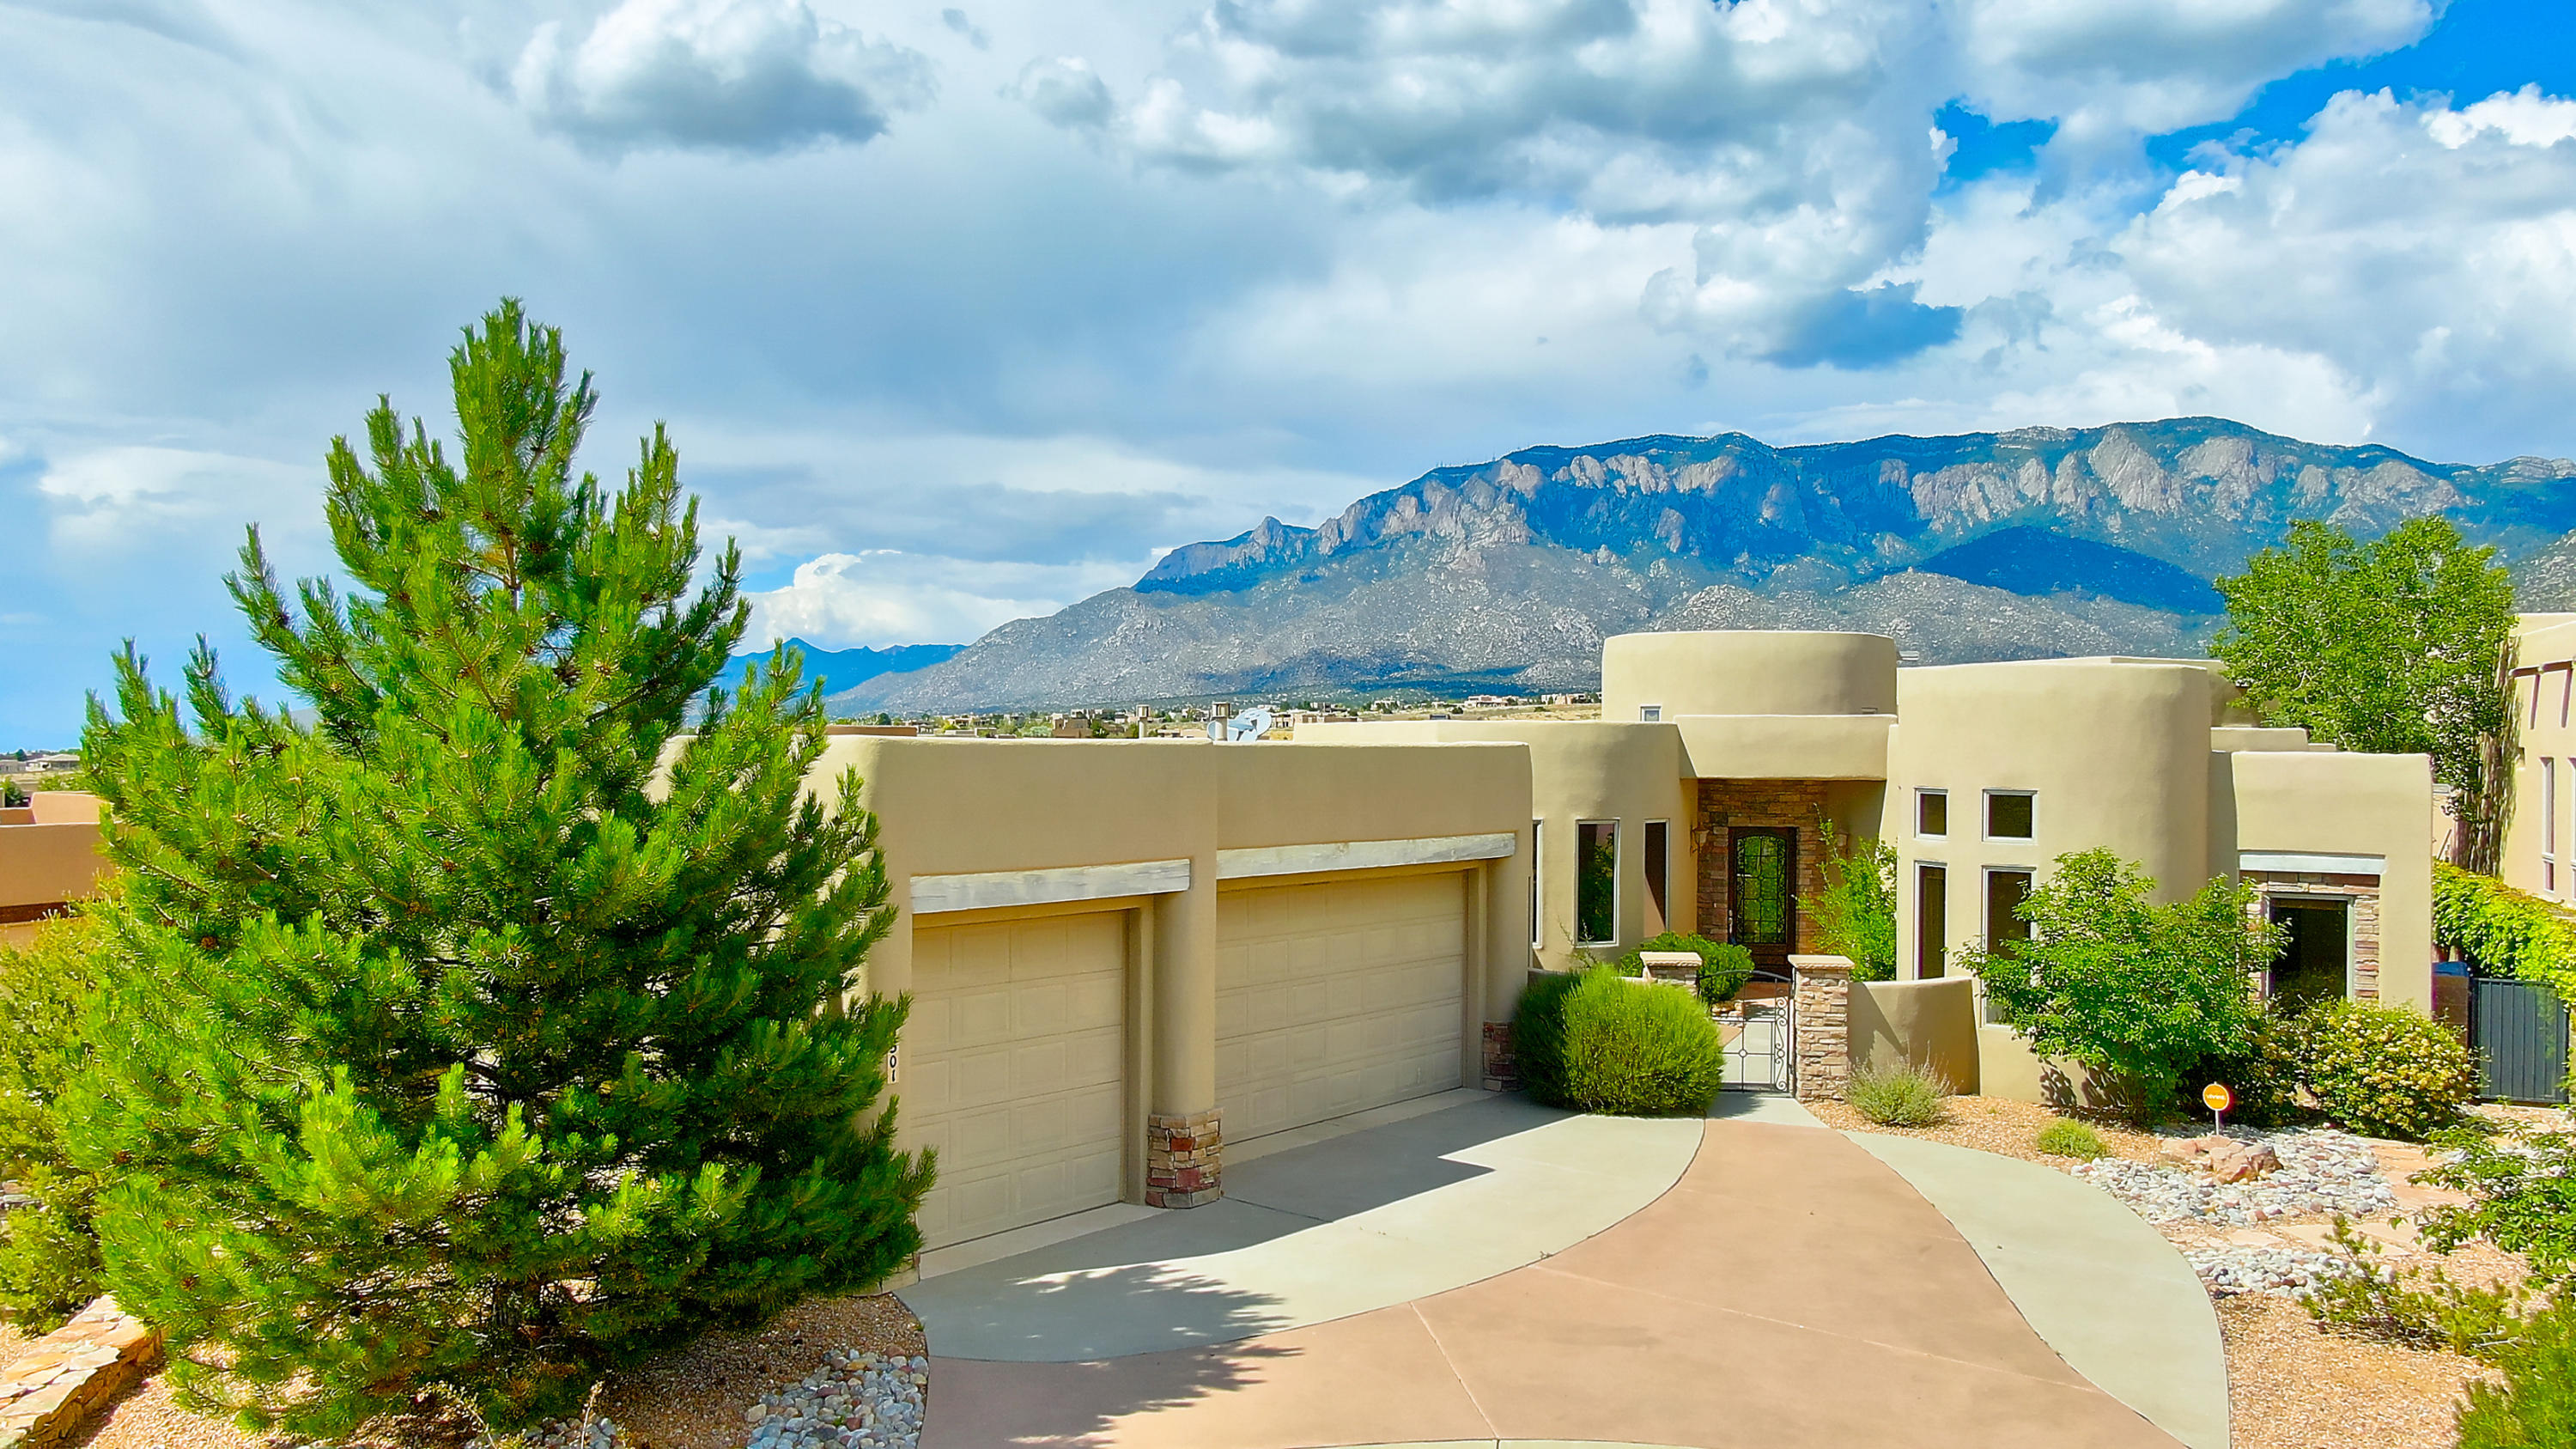 Amazing Sandia Mountain views! This one story custom built Keystone home offers everything you are looking for.  The layout gives you living and dining with Sandia Mountain views and a kitchen you will appreciate for cooking and entertaining. Double ovens, gas range compliment Alder cabinets and granite counters.  4 bedrooms and 3 with attached bathrooms making it great space for extended family or teenagers. The 4th bedroom can also make a fantastic office,  Spacious 3 car garage helps store your toys and gives plenty of parking.  High Desert location, Eldorado school district and unsurpassed mountain and city views!